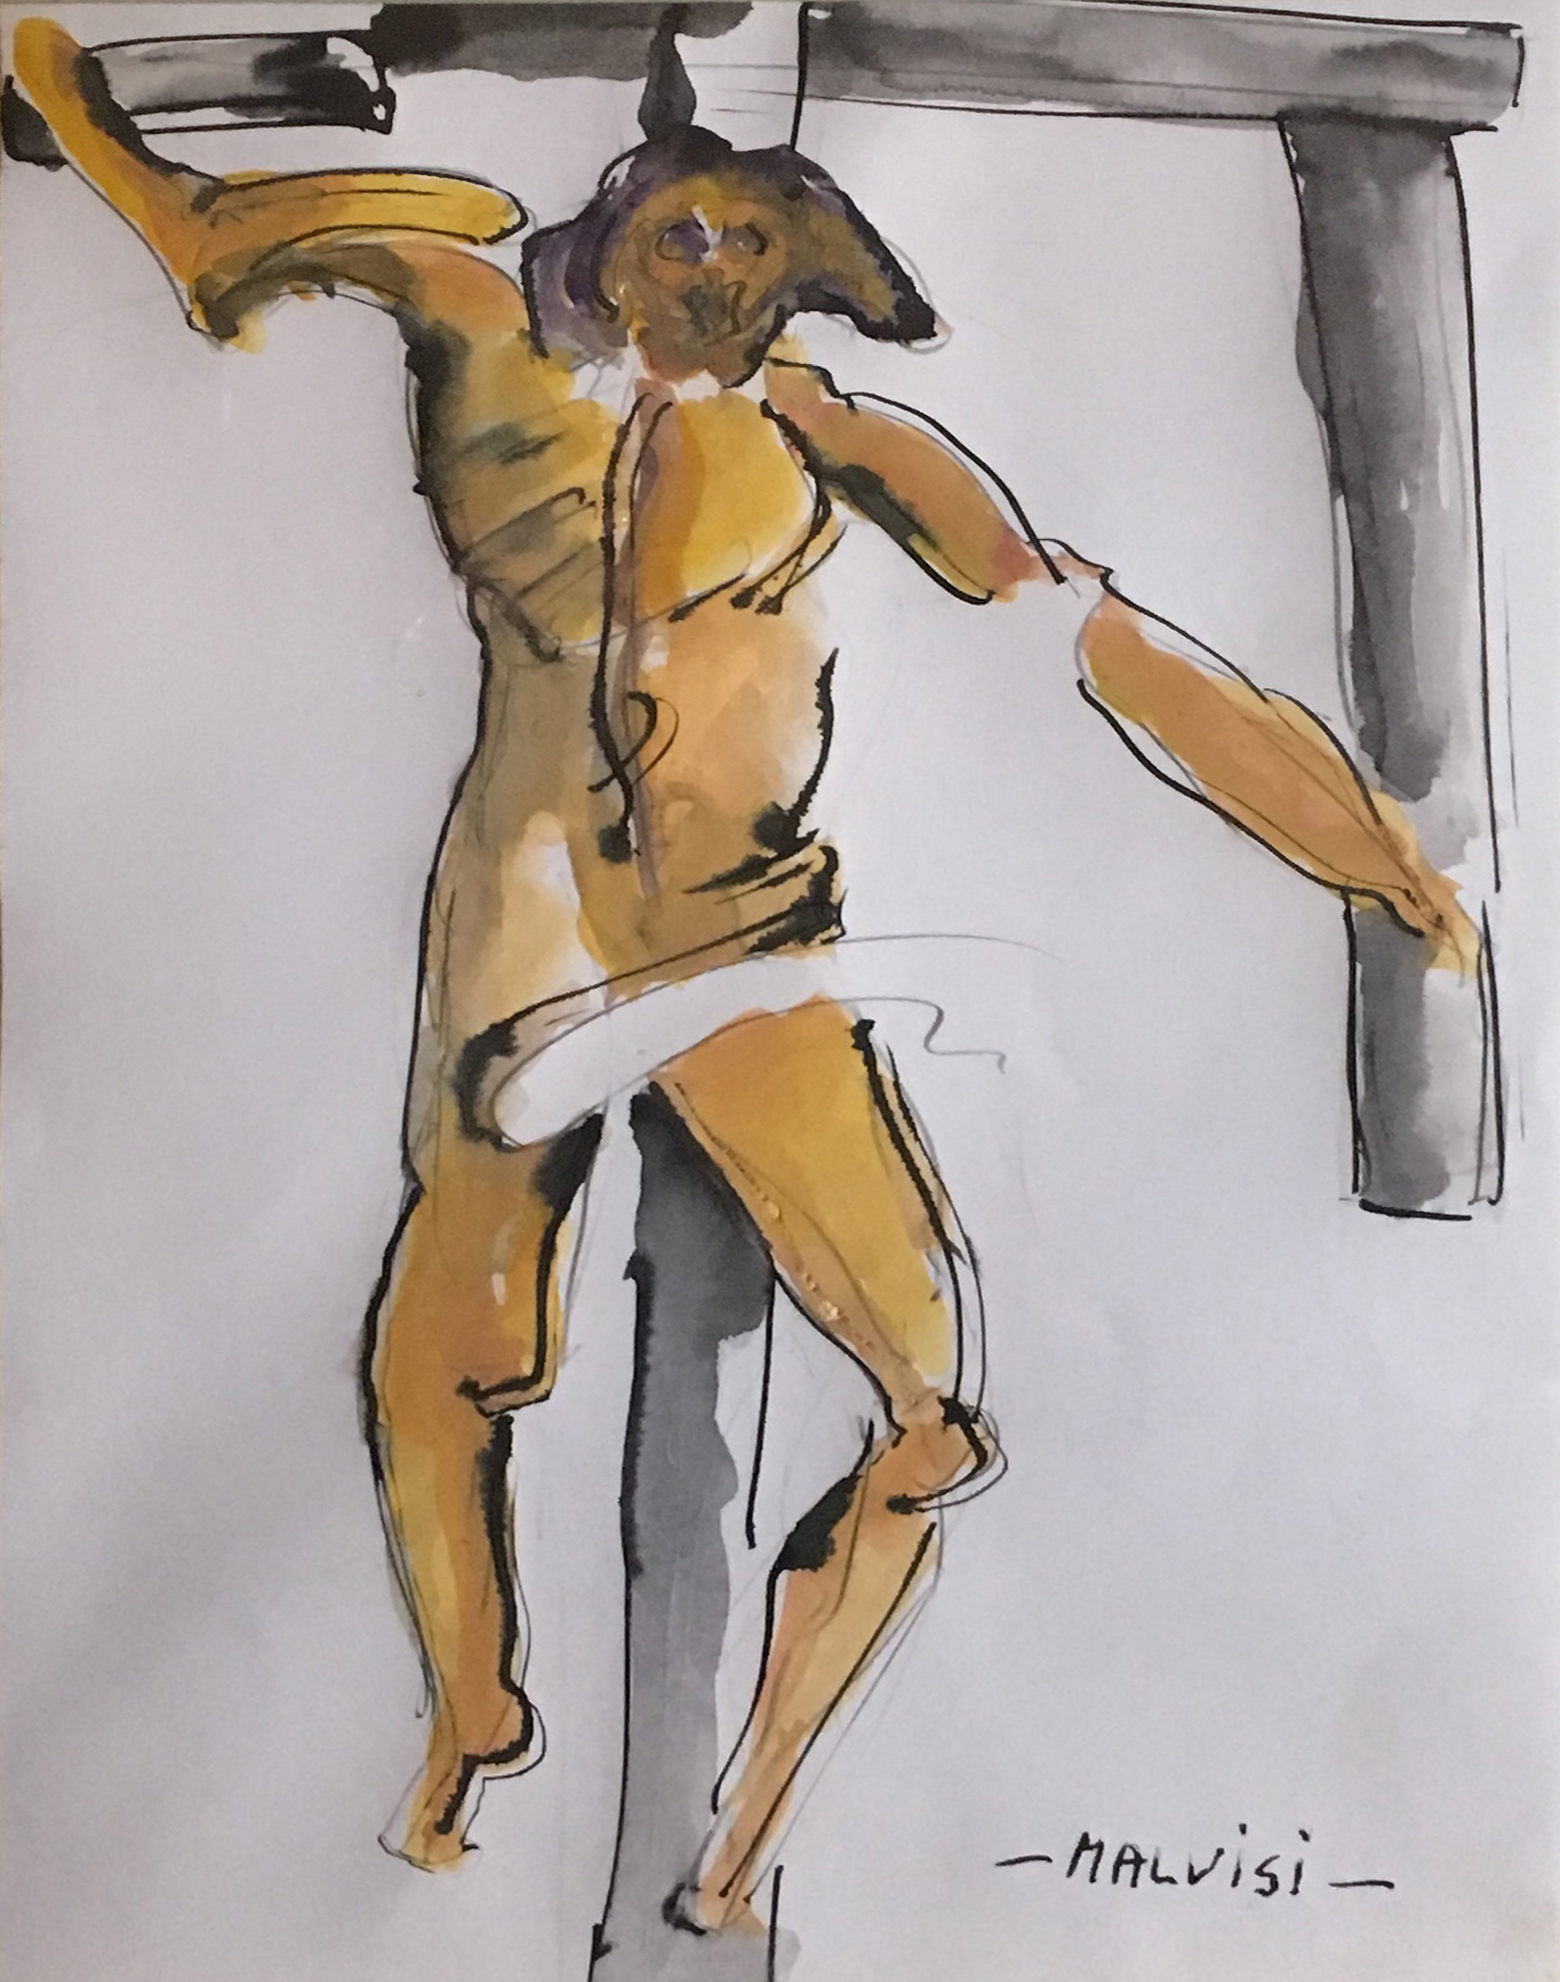 <b>Crucifix</b><br> (Orig.Crocifisso) <br> 2009 Indian ink and watercolor <br> cm 34 x 49